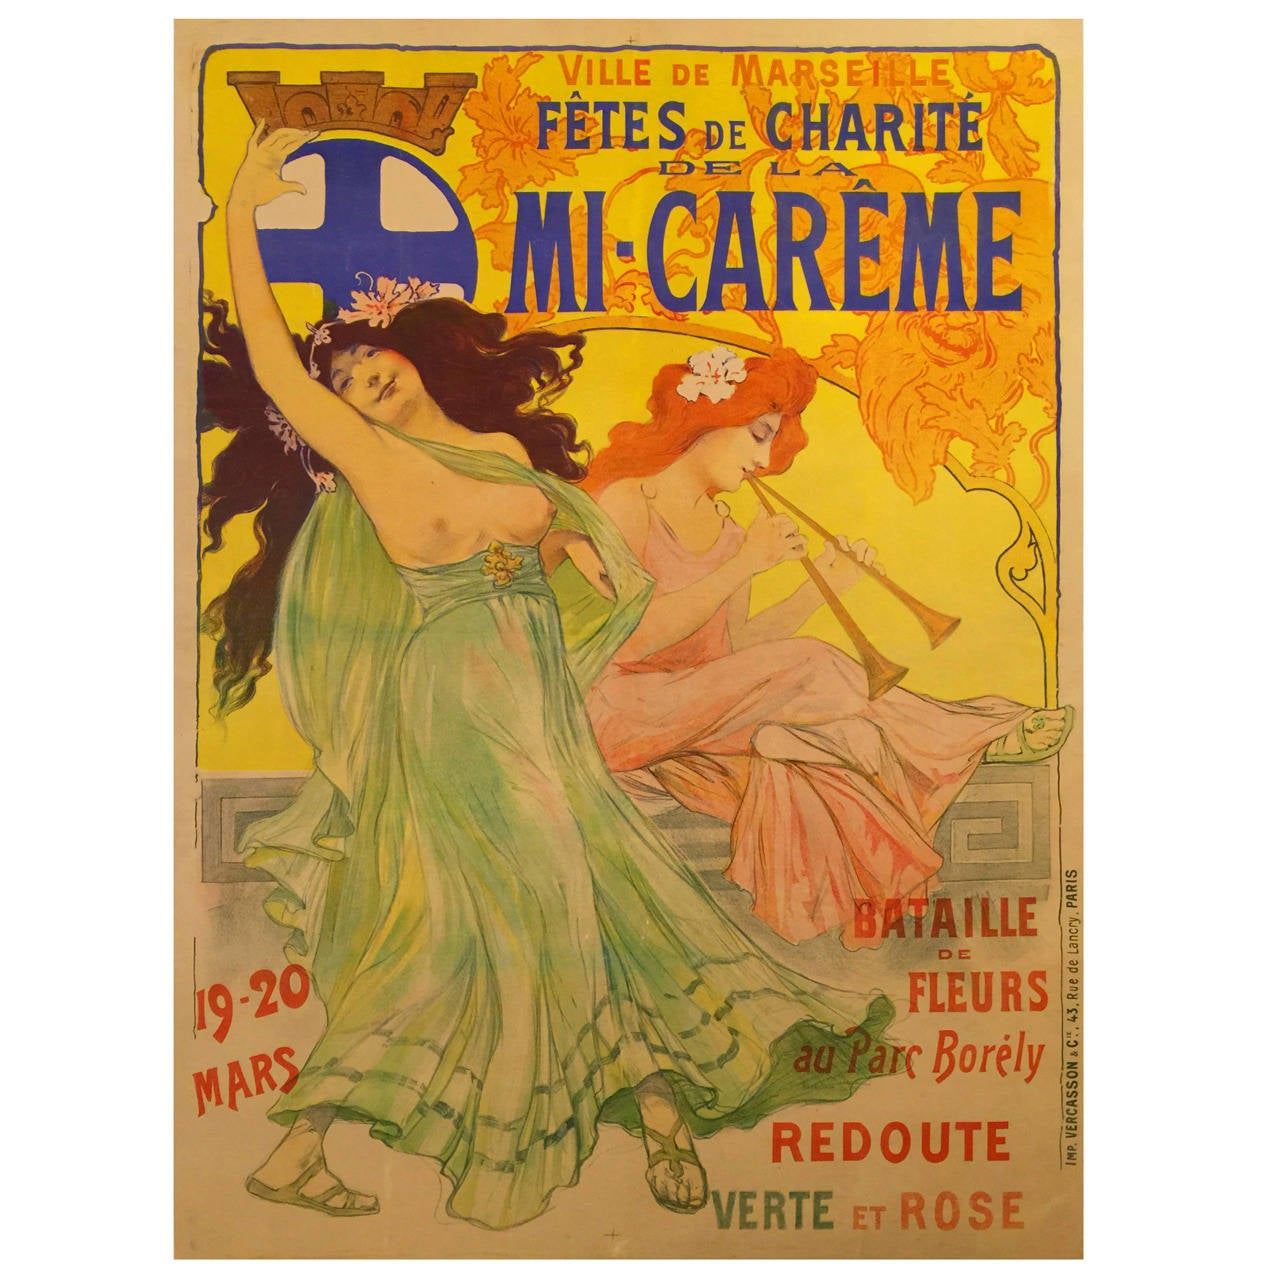 Rare Art Nouveau Period French Advertising Poster for a Festival in Marseille